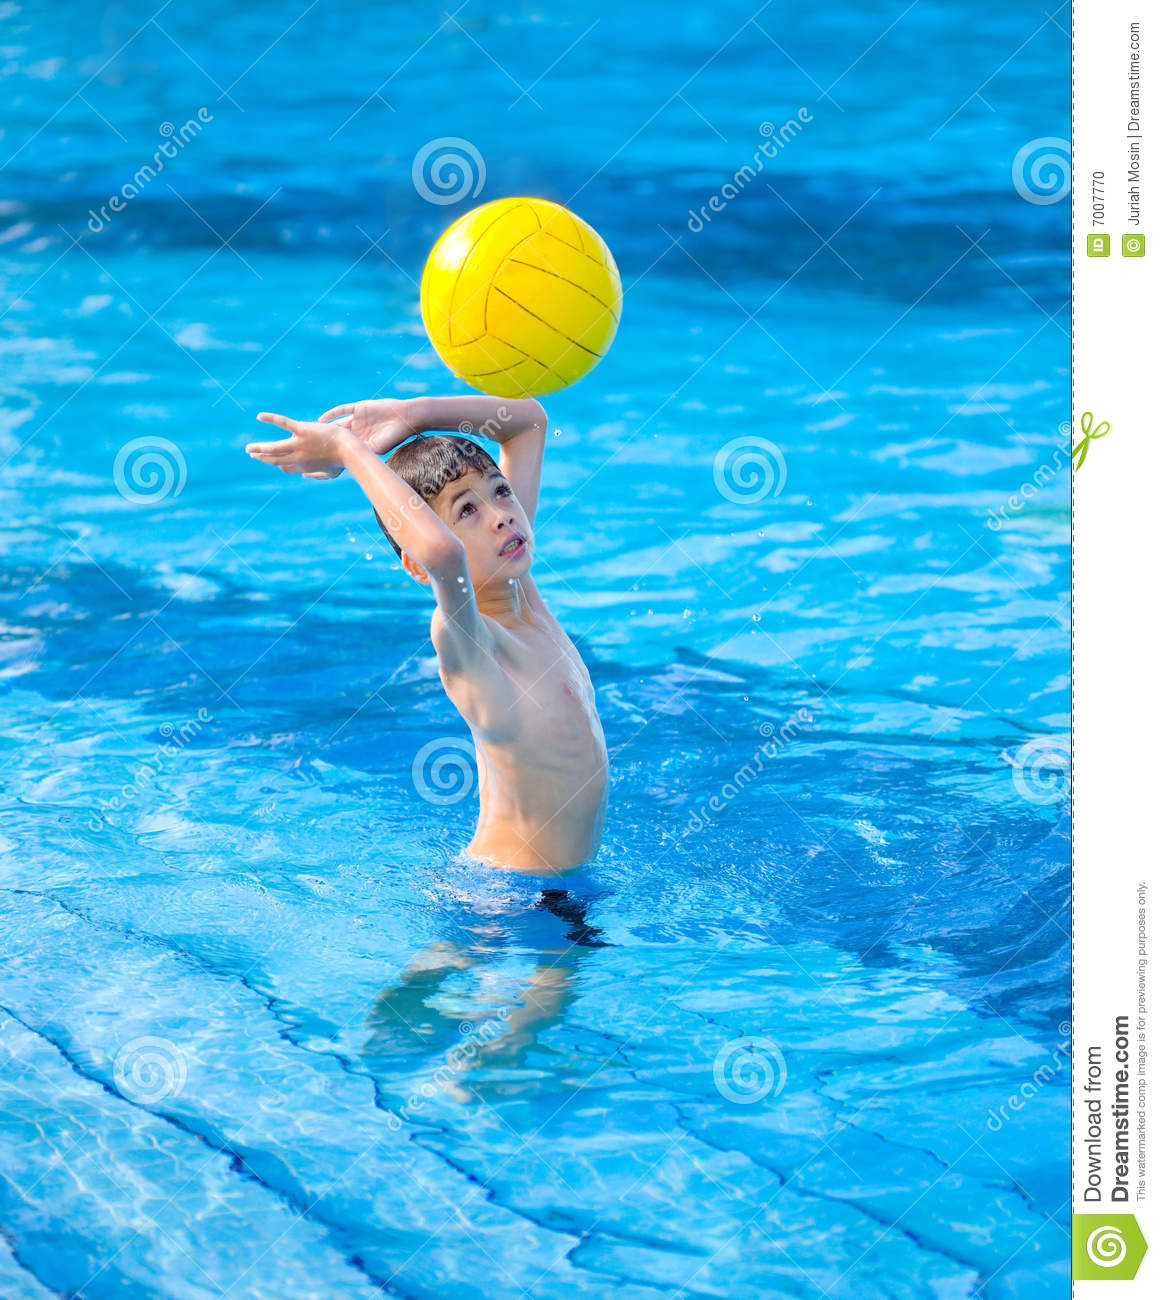 Images of young boy taking a break from swimming